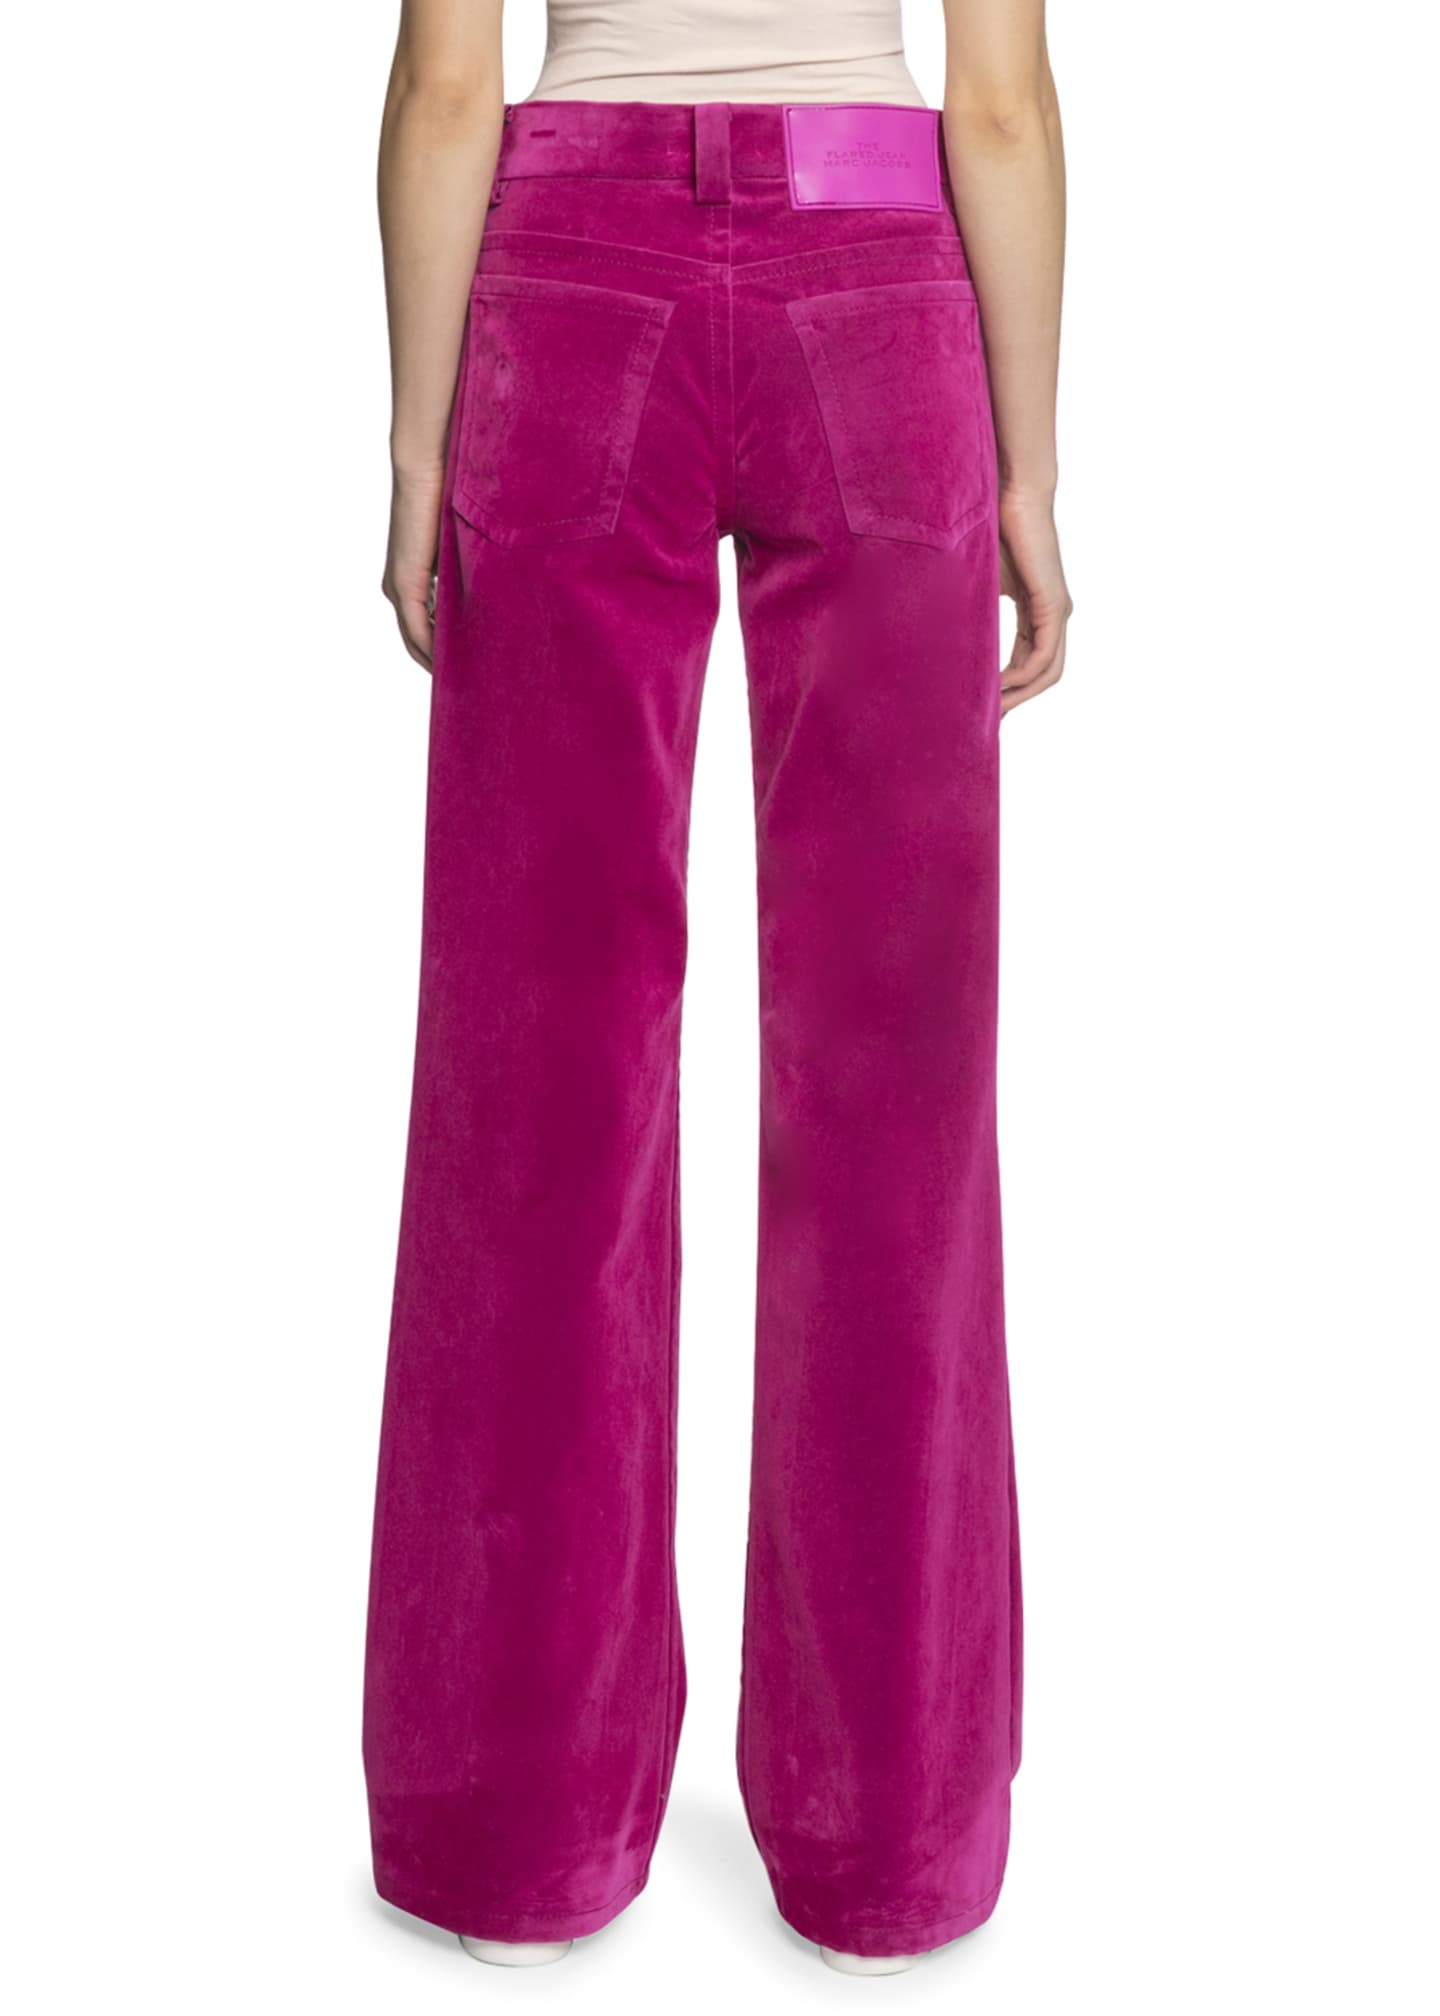 Image 2 of 2: The Velveteen Flared Jeans